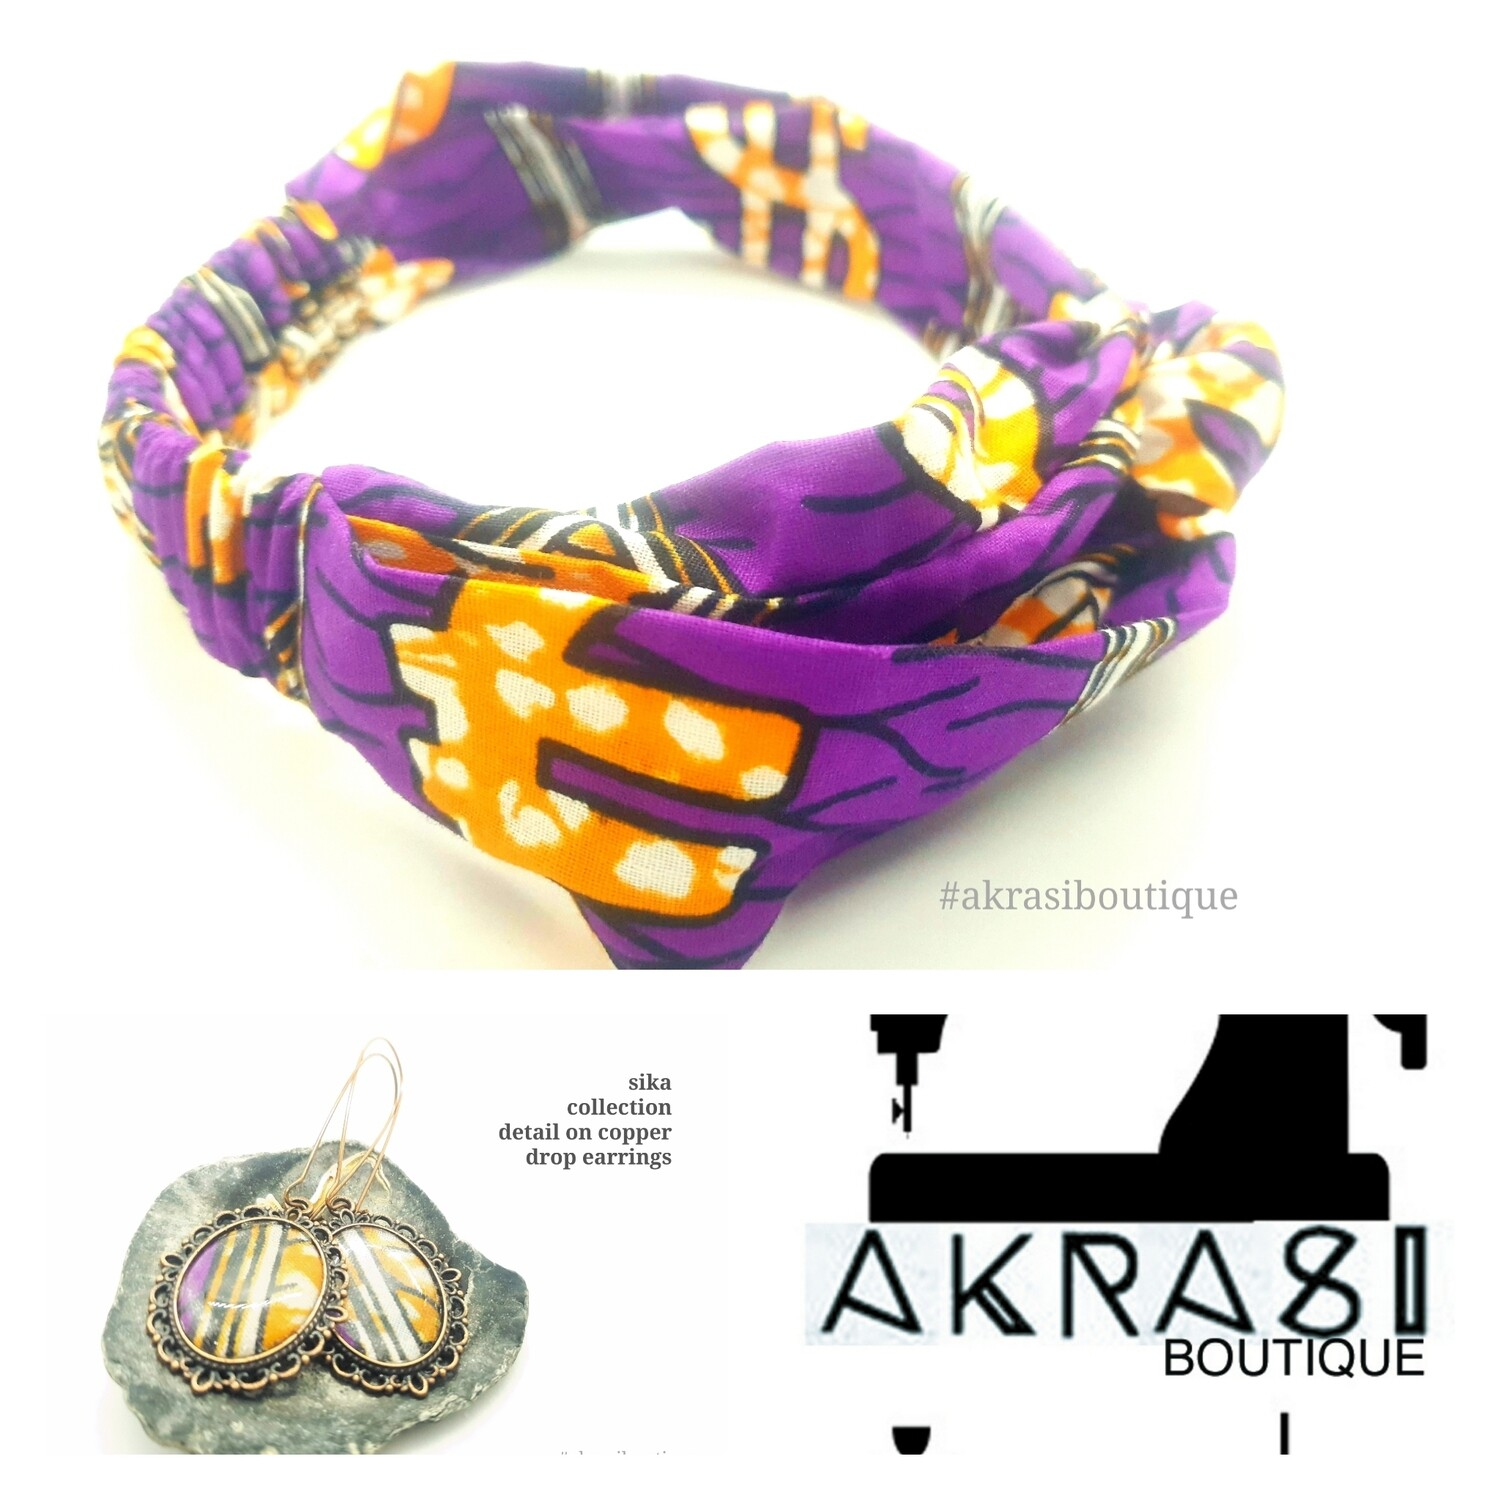 Sika collection accessory set includes purple ankara wire half turban headband and matching copper drop earrings